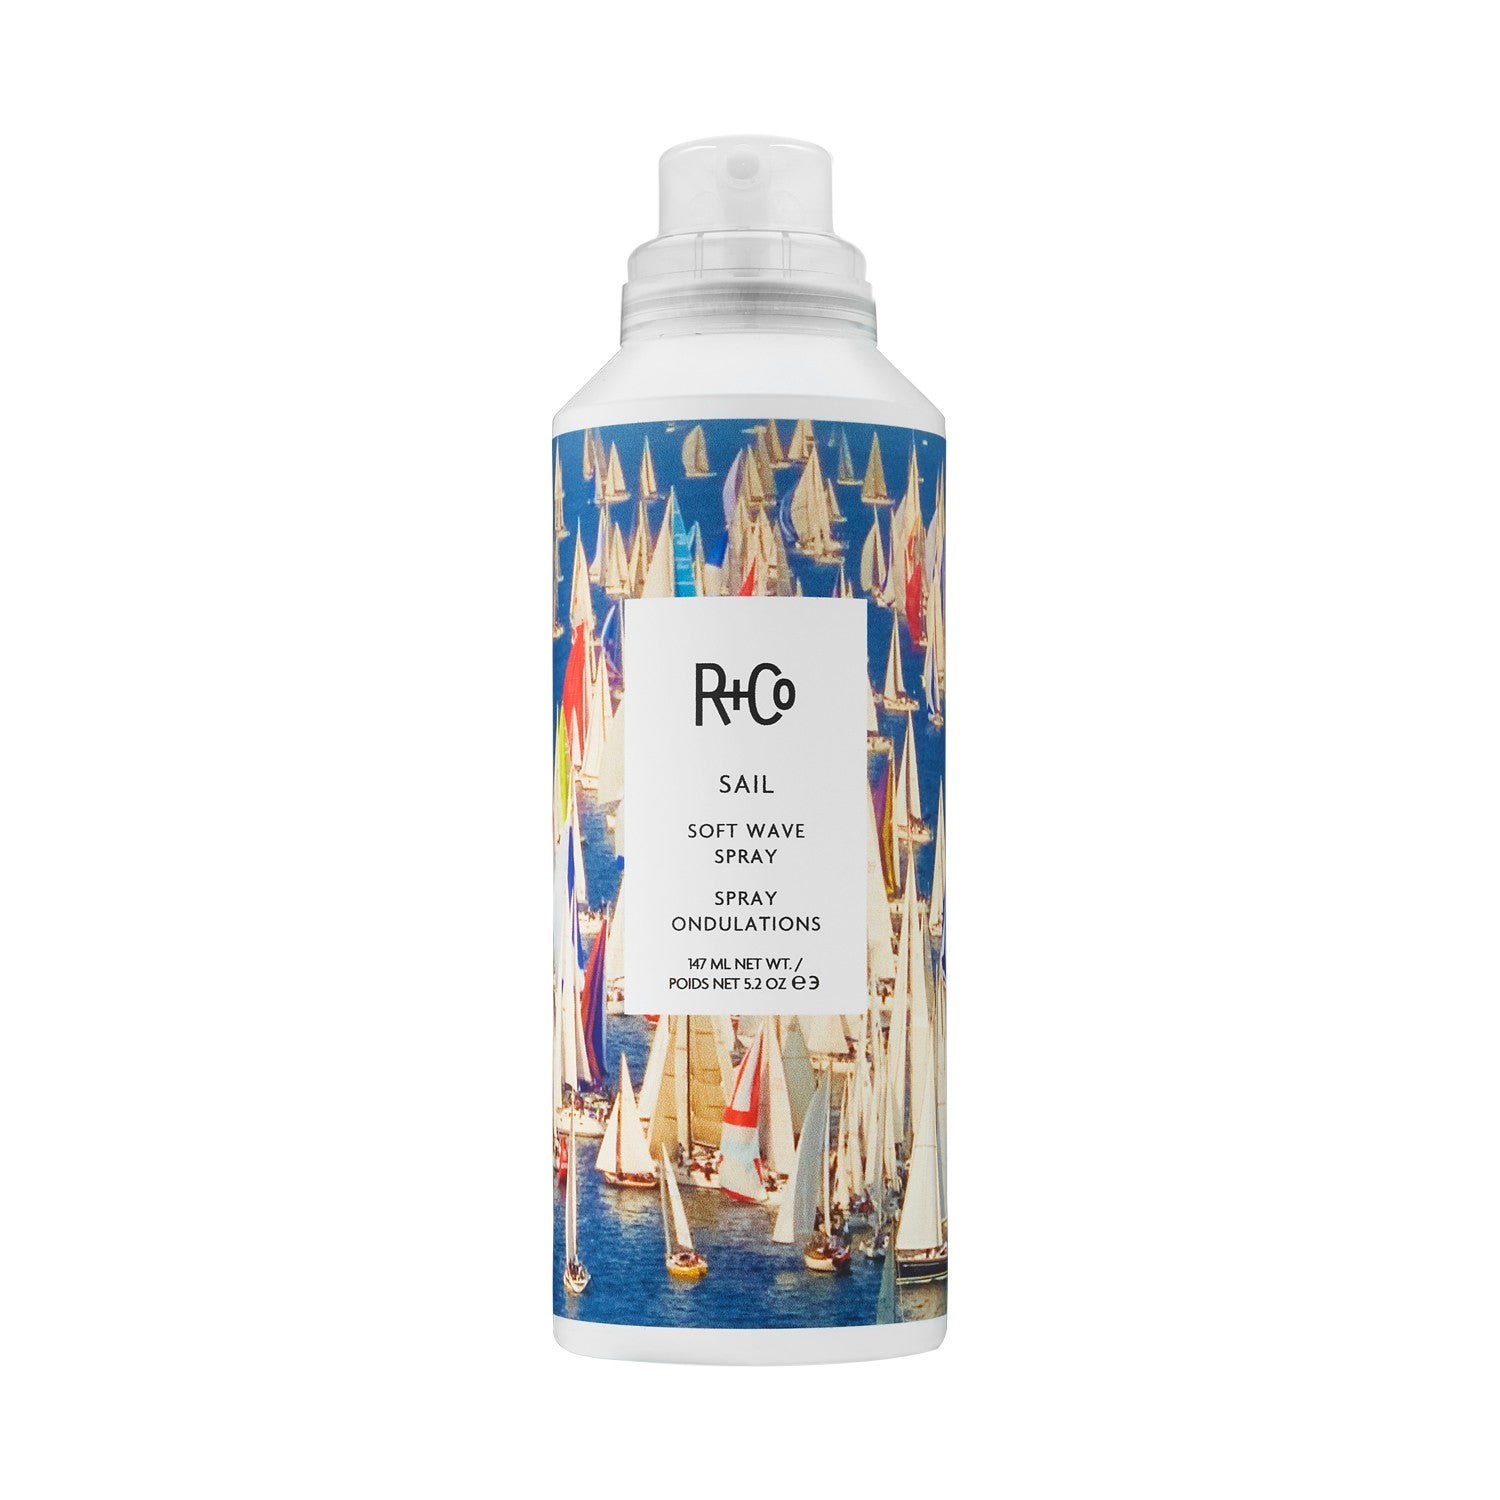 R Co Sail Soft Wave Spray